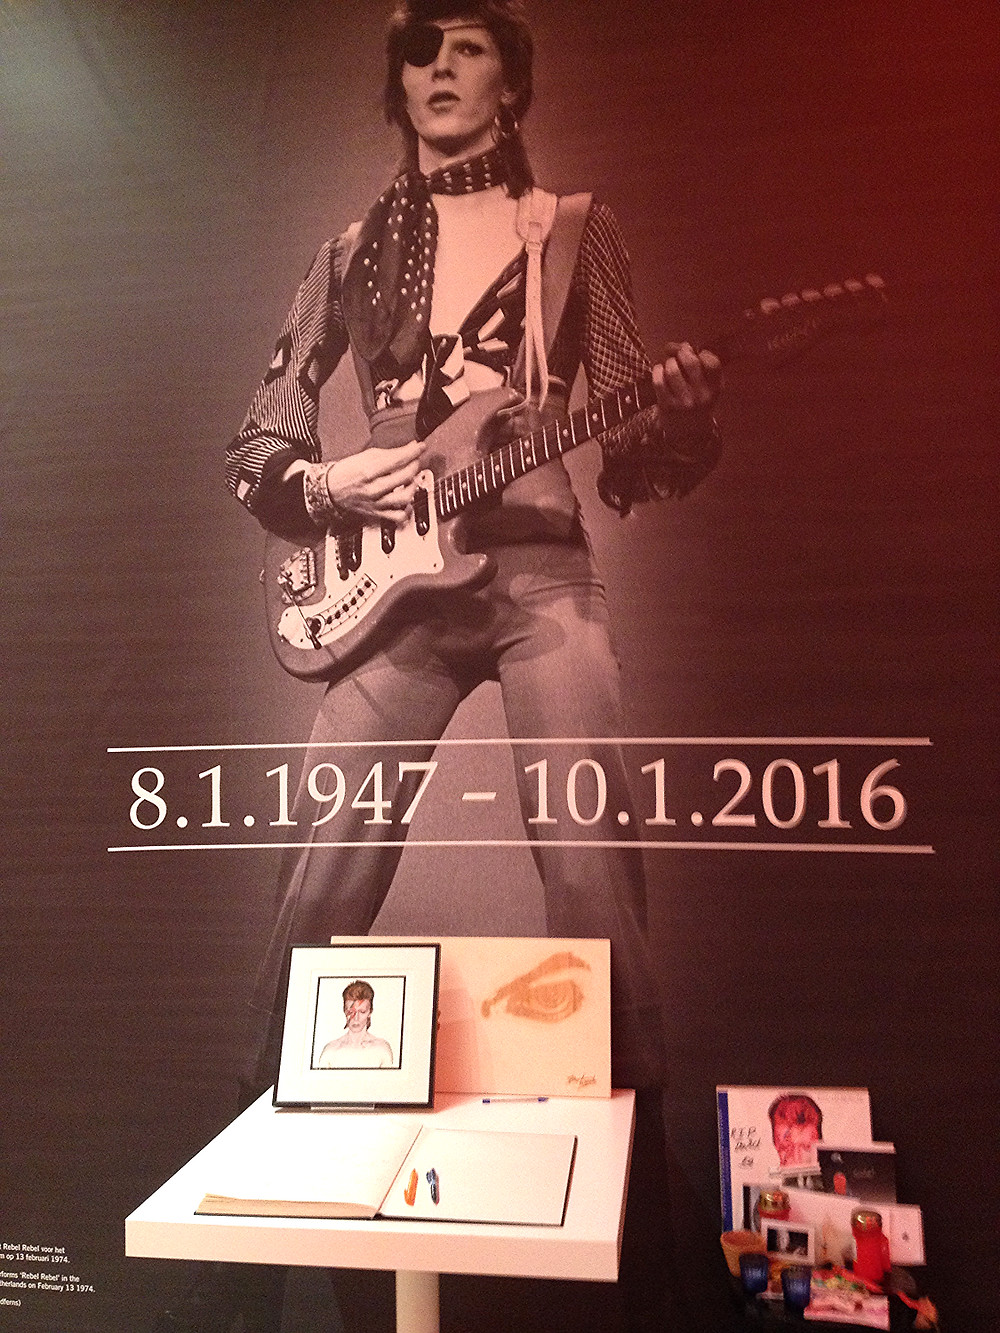 David Bowie Memorial Groningen Netherlands